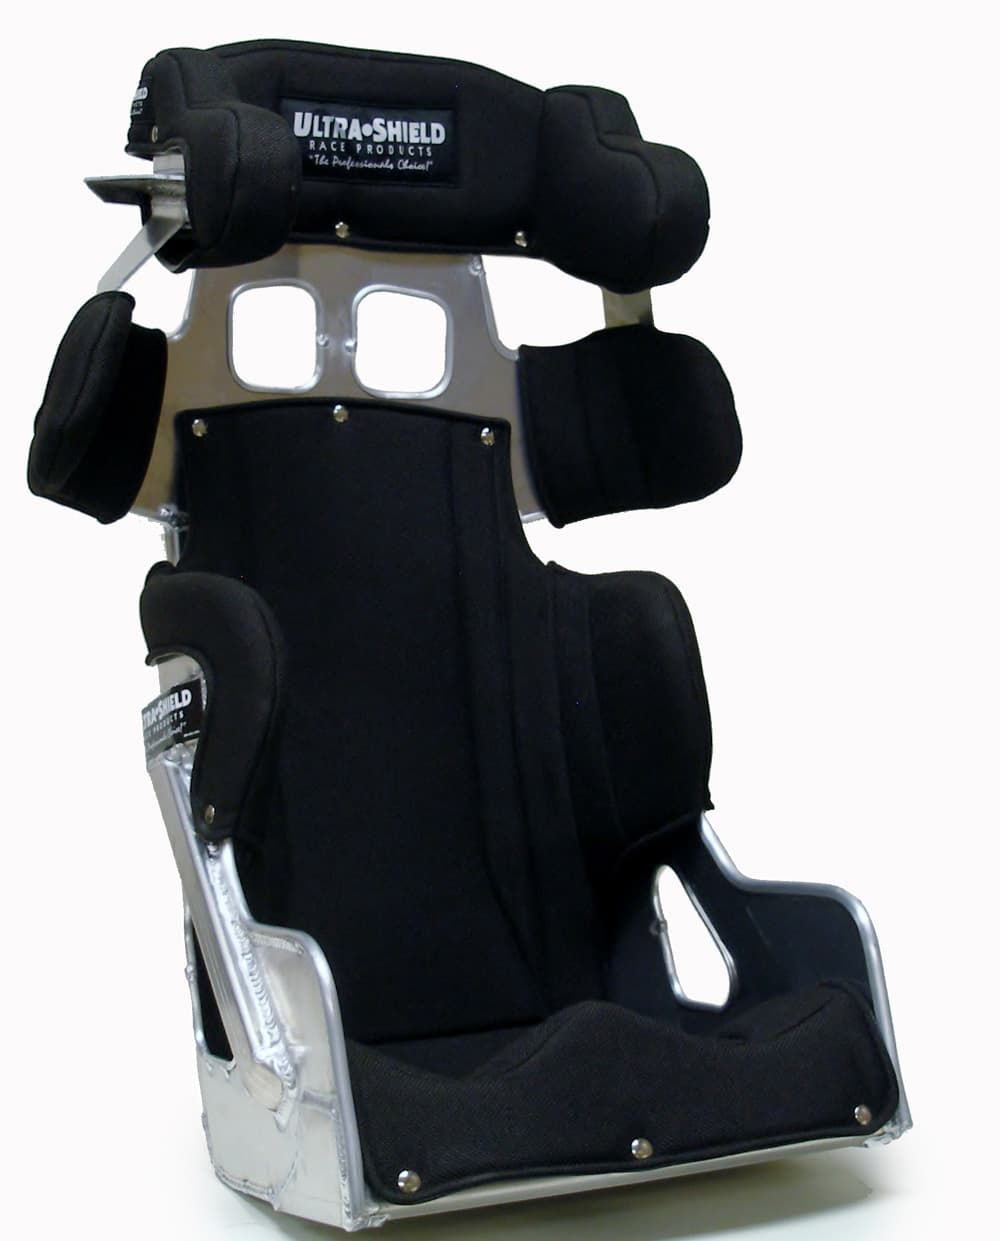 ULTRA SHIELD RACING PRODUCTS FC2 SEAT- 10 DREEE LAYBACK